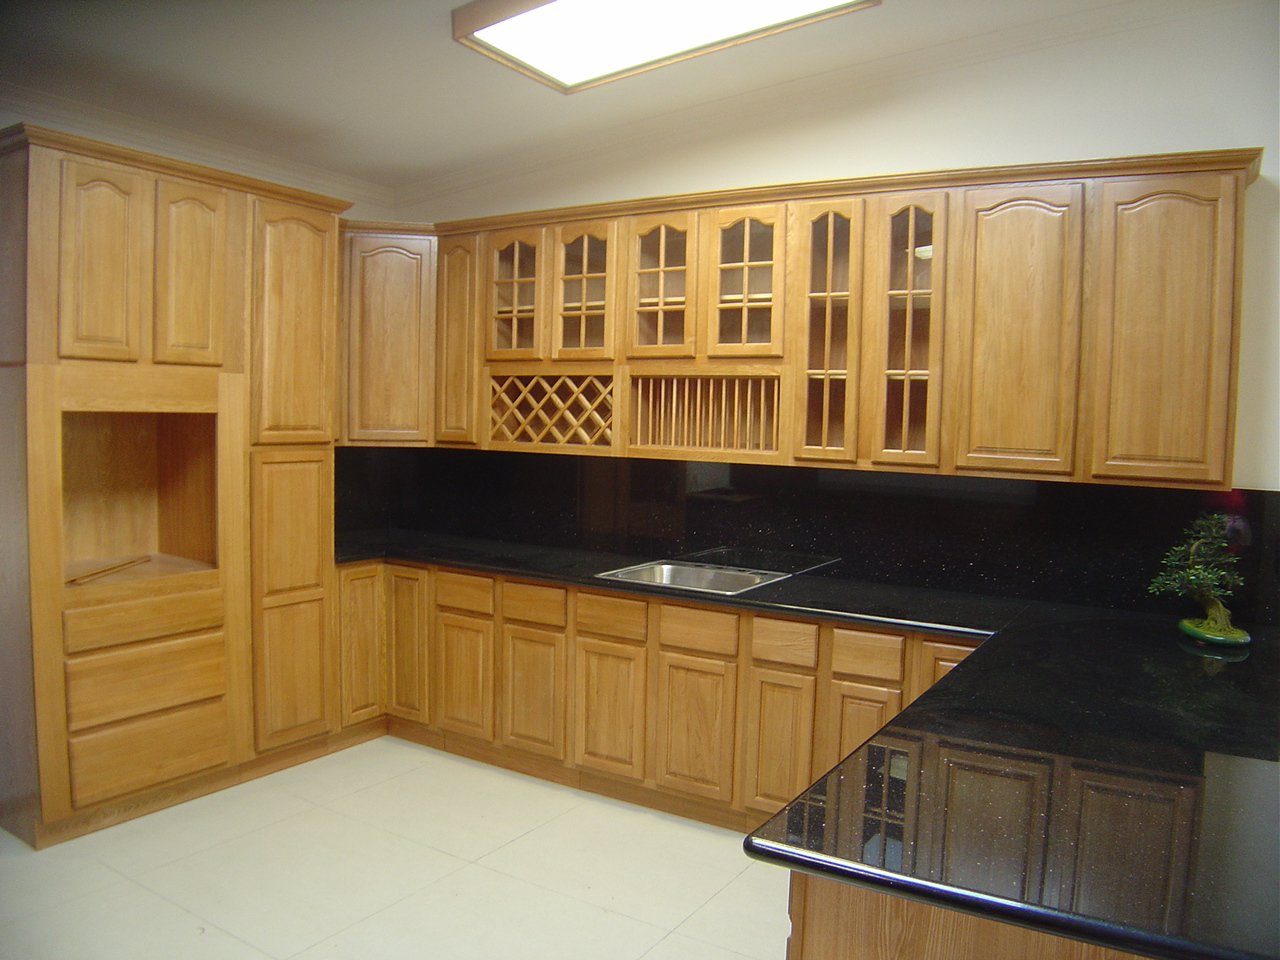 Natural Oak Kitchen Cabinets – Solid All Wood Kitchen Cabinetry. Full resolution‎  pic, nominally Width 1280 Height 960 pixels, pic with #684626.